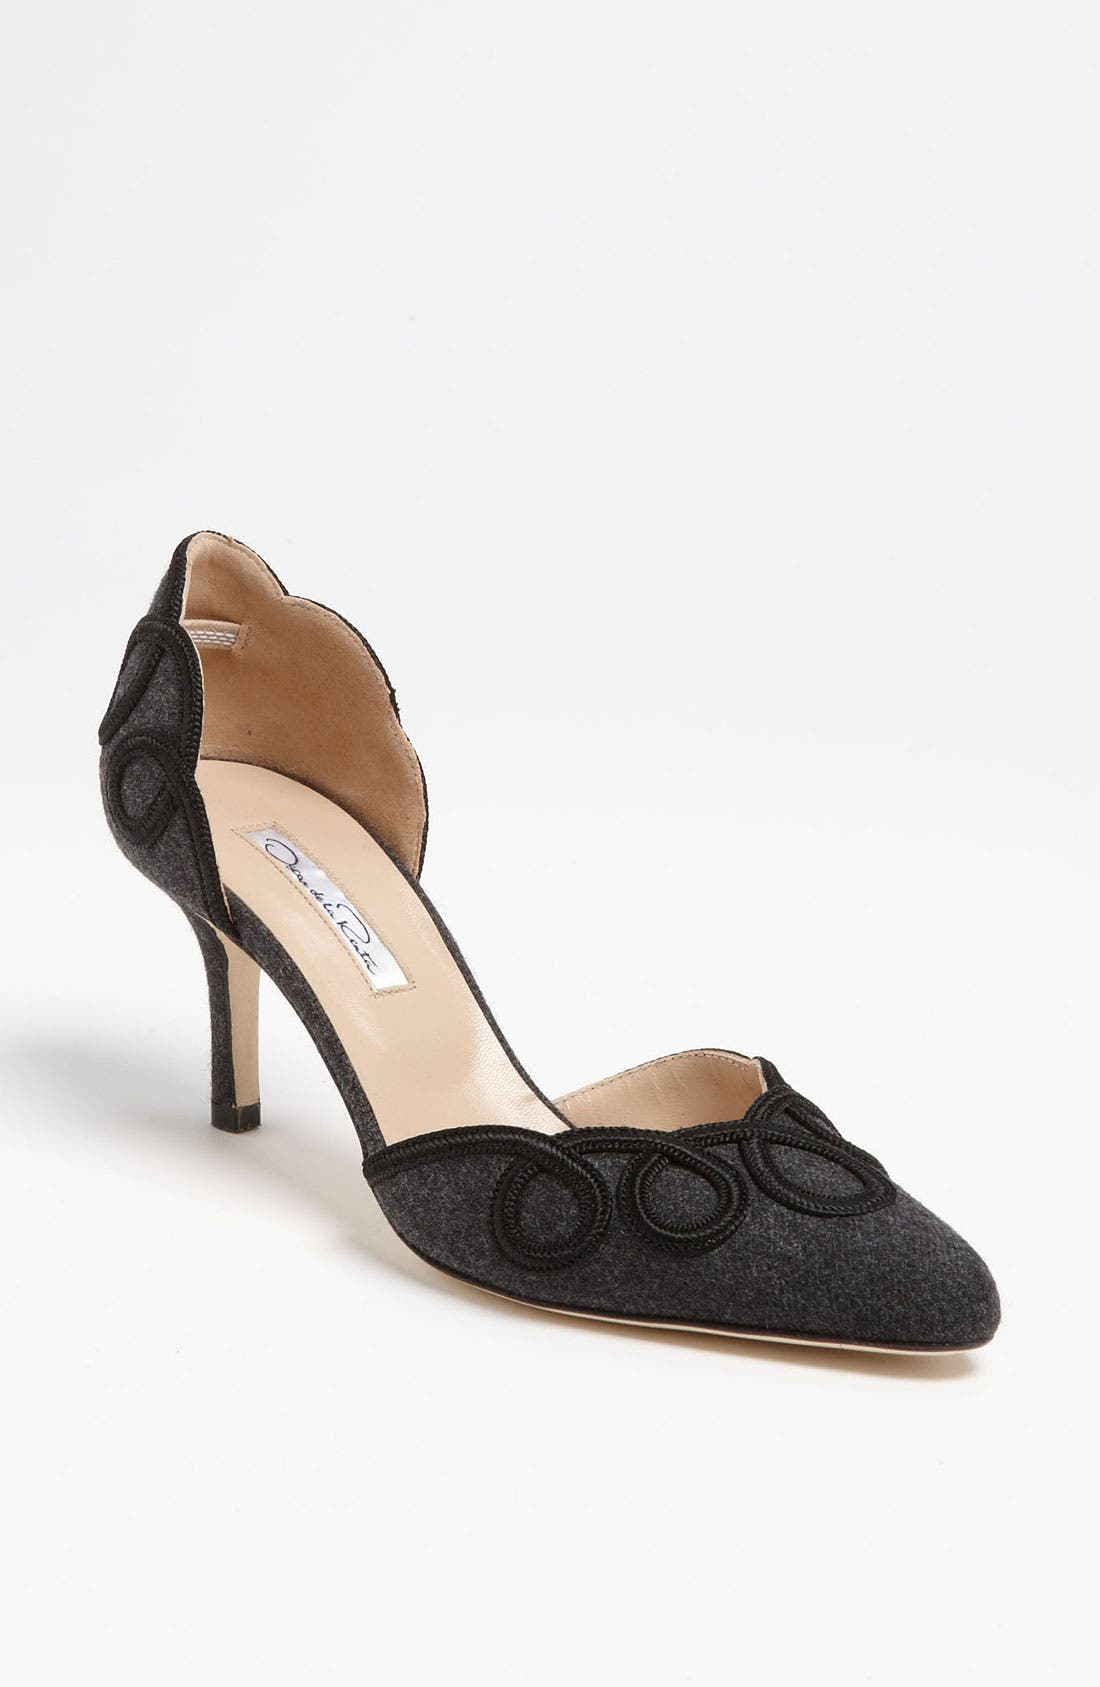 Alternate Image 1 Selected - Oscar de la Renta 'Brenda' Pump